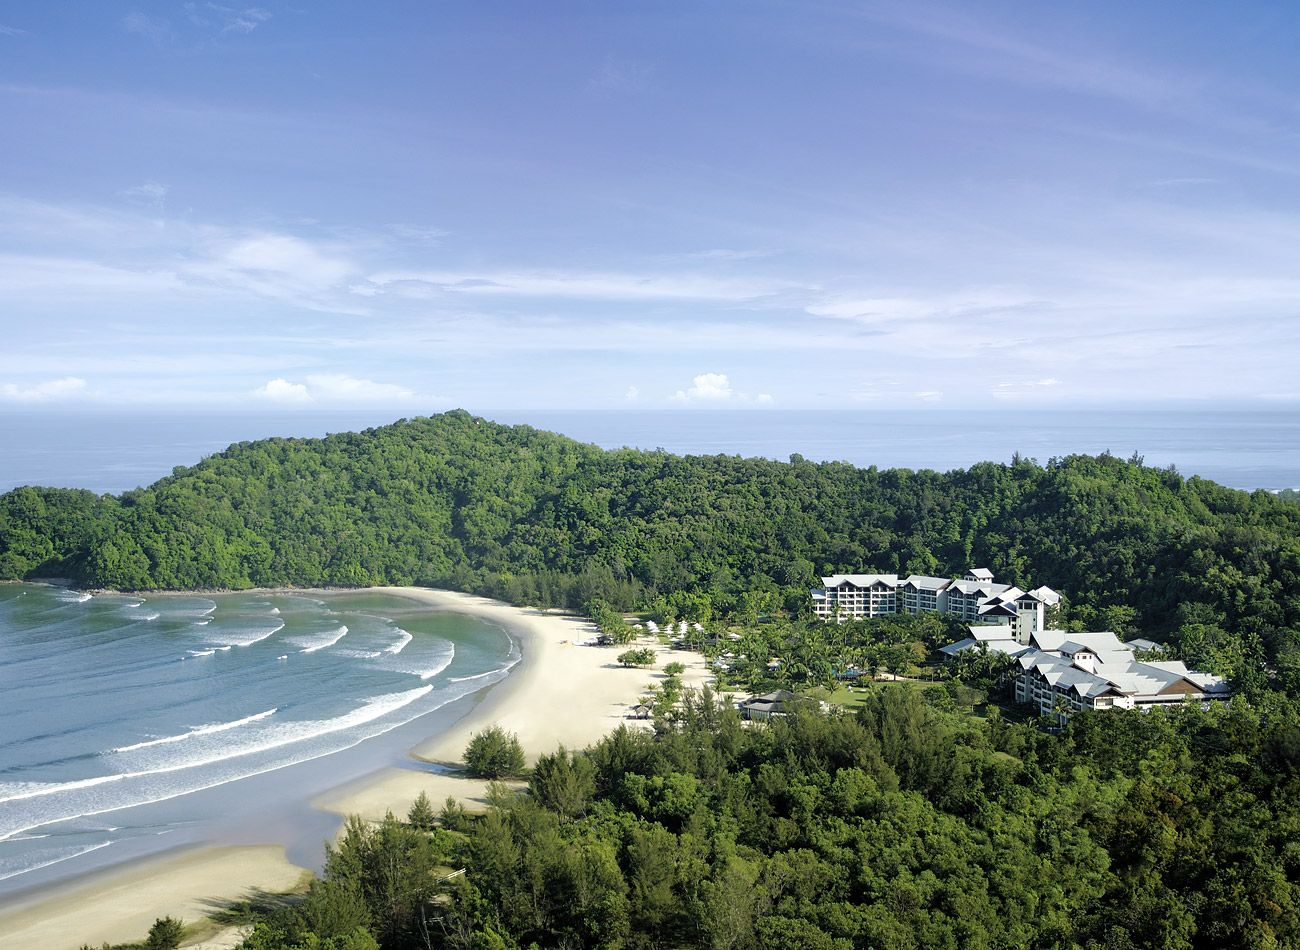 Ever stayed in any 5-star hotel in sabah?